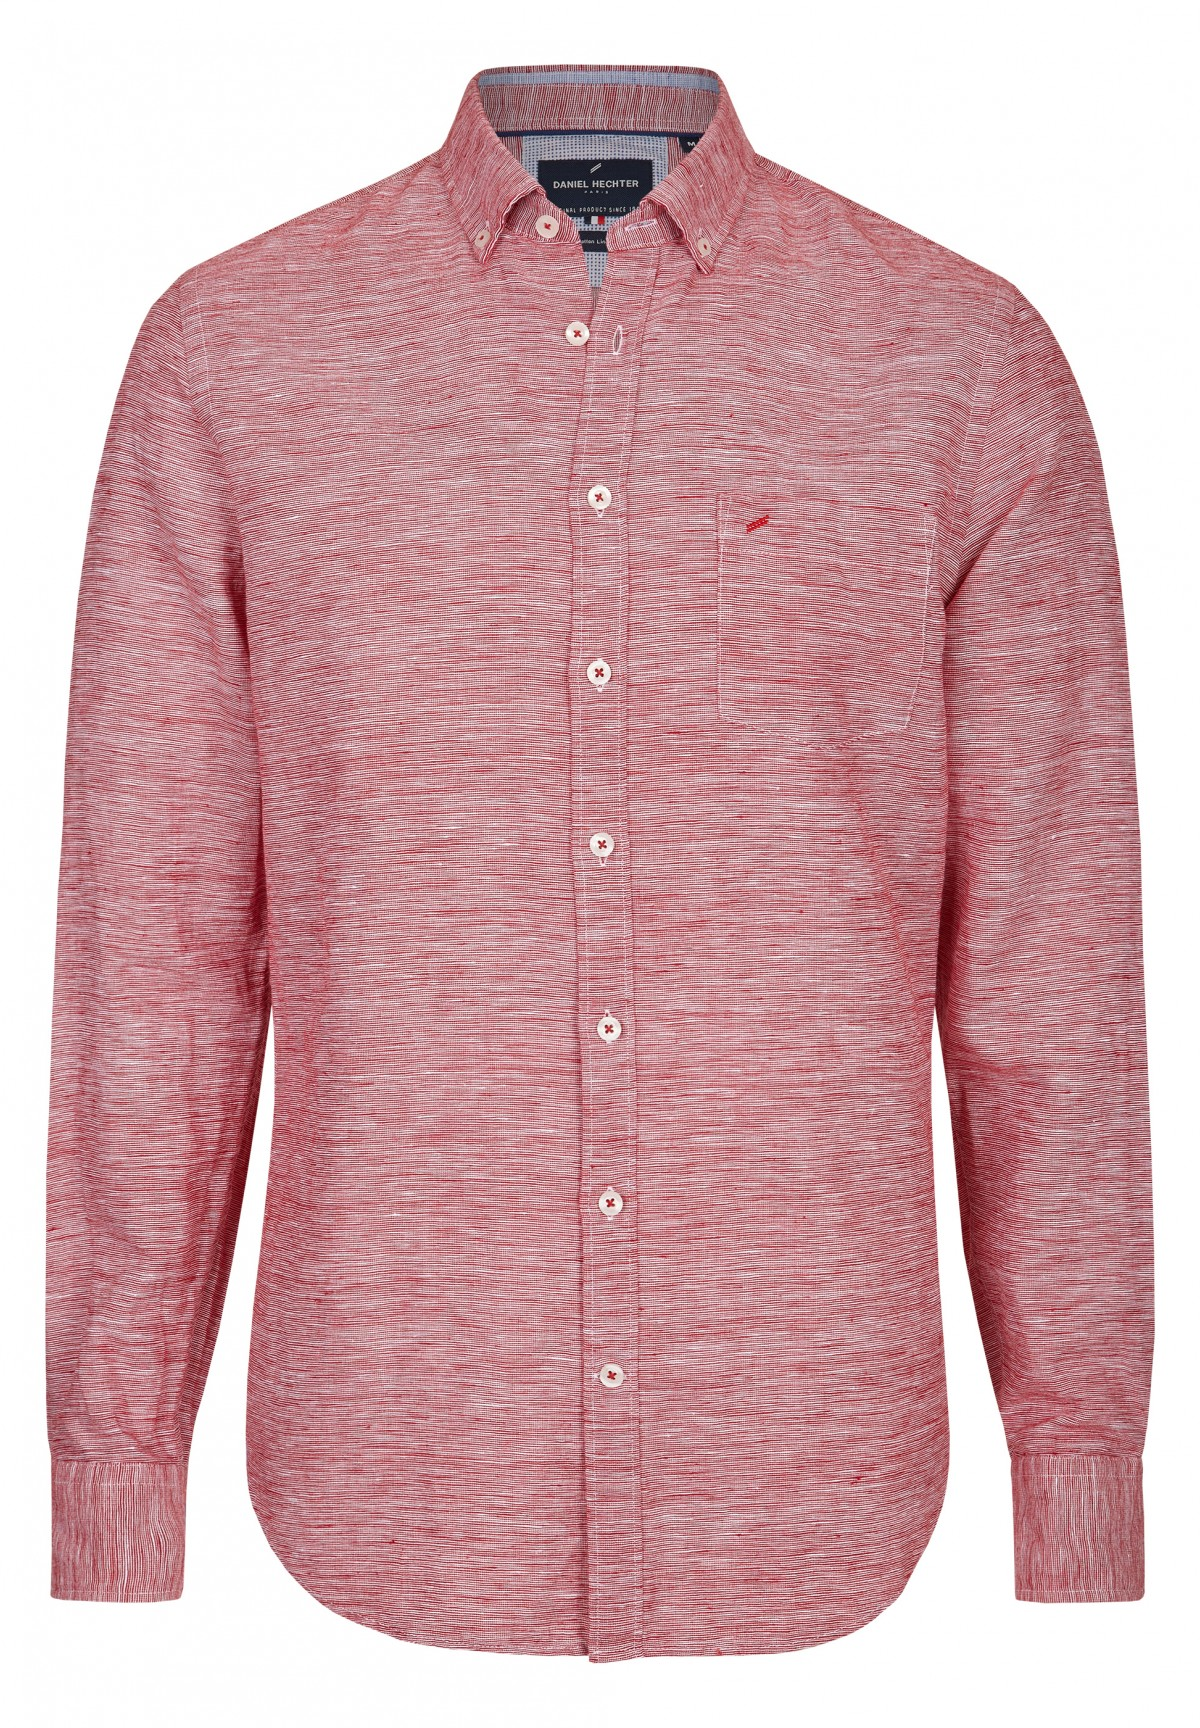 Sommerliches Casual Hemd / SHIRT MODERN FIT